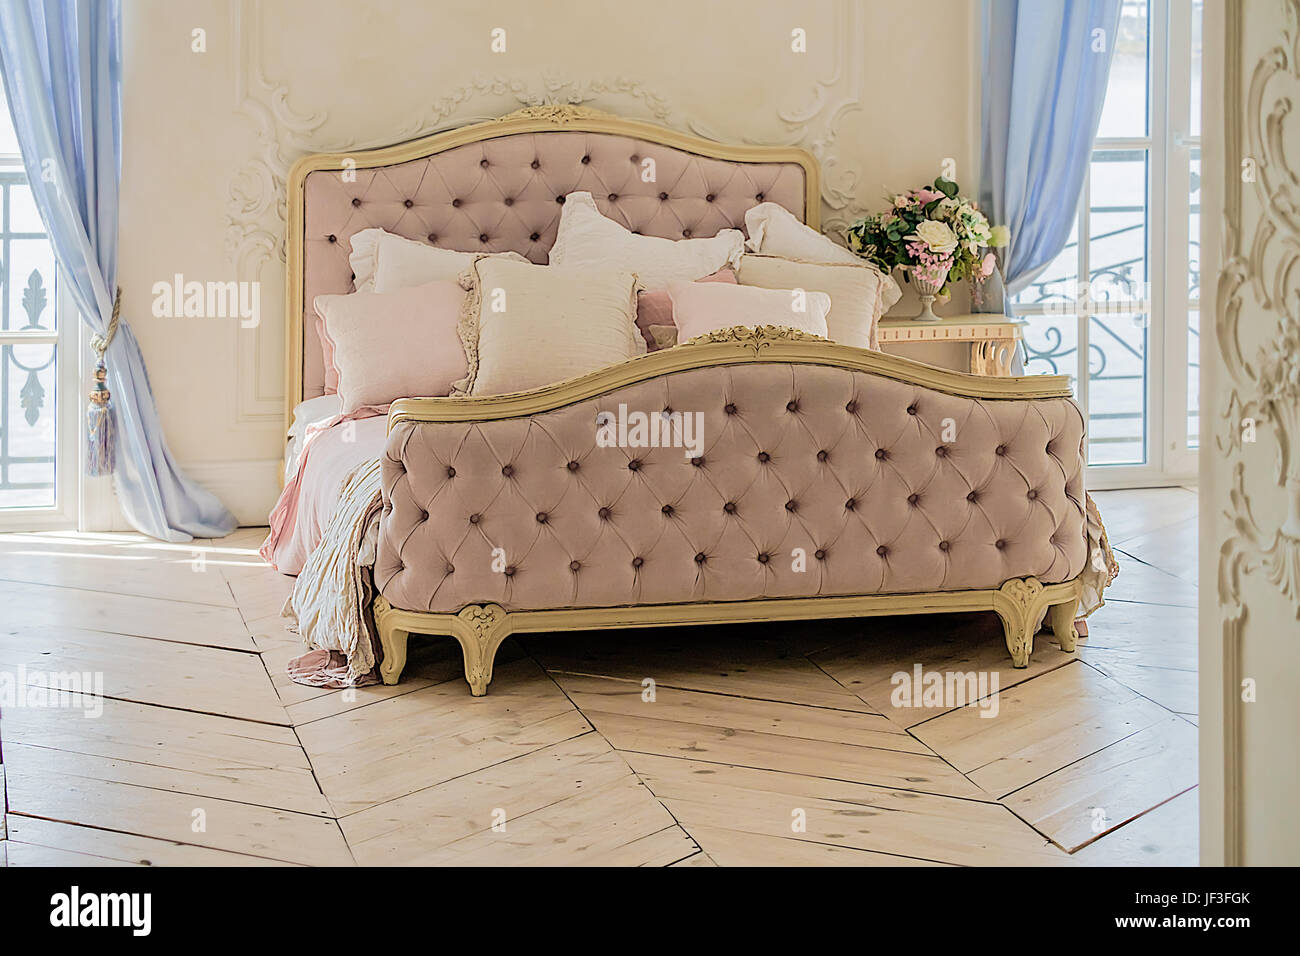 vintage bett mit kissen in luxus saubere helle wei e schlafzimmer innenraum stockfoto bild. Black Bedroom Furniture Sets. Home Design Ideas